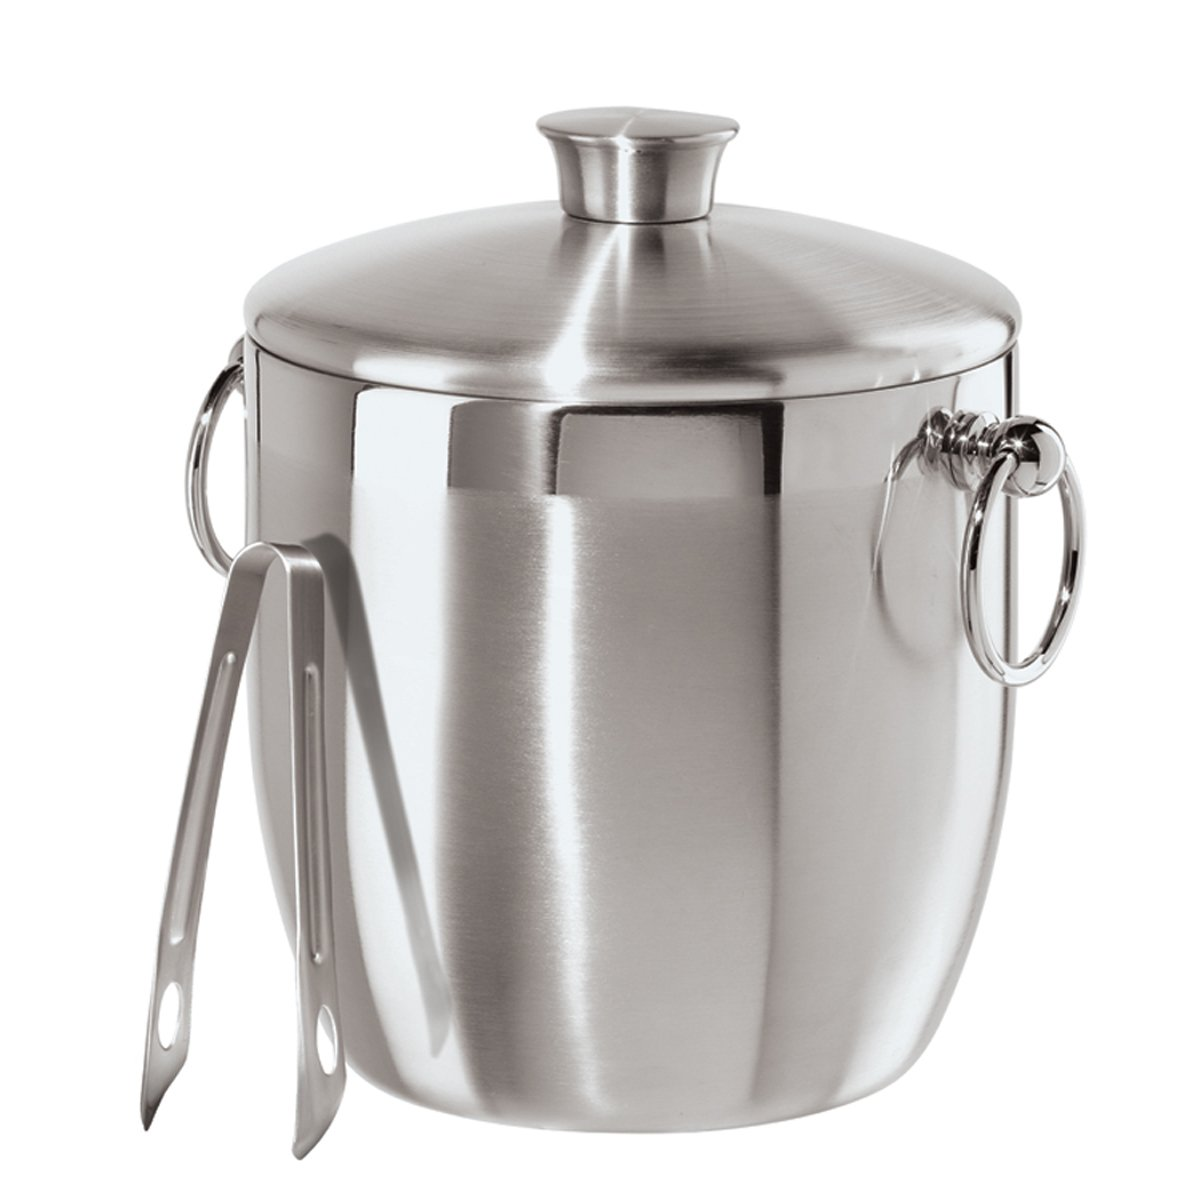 Oggi Stainless Steel Ice Bucket with Tongs, 3 L by Oggi